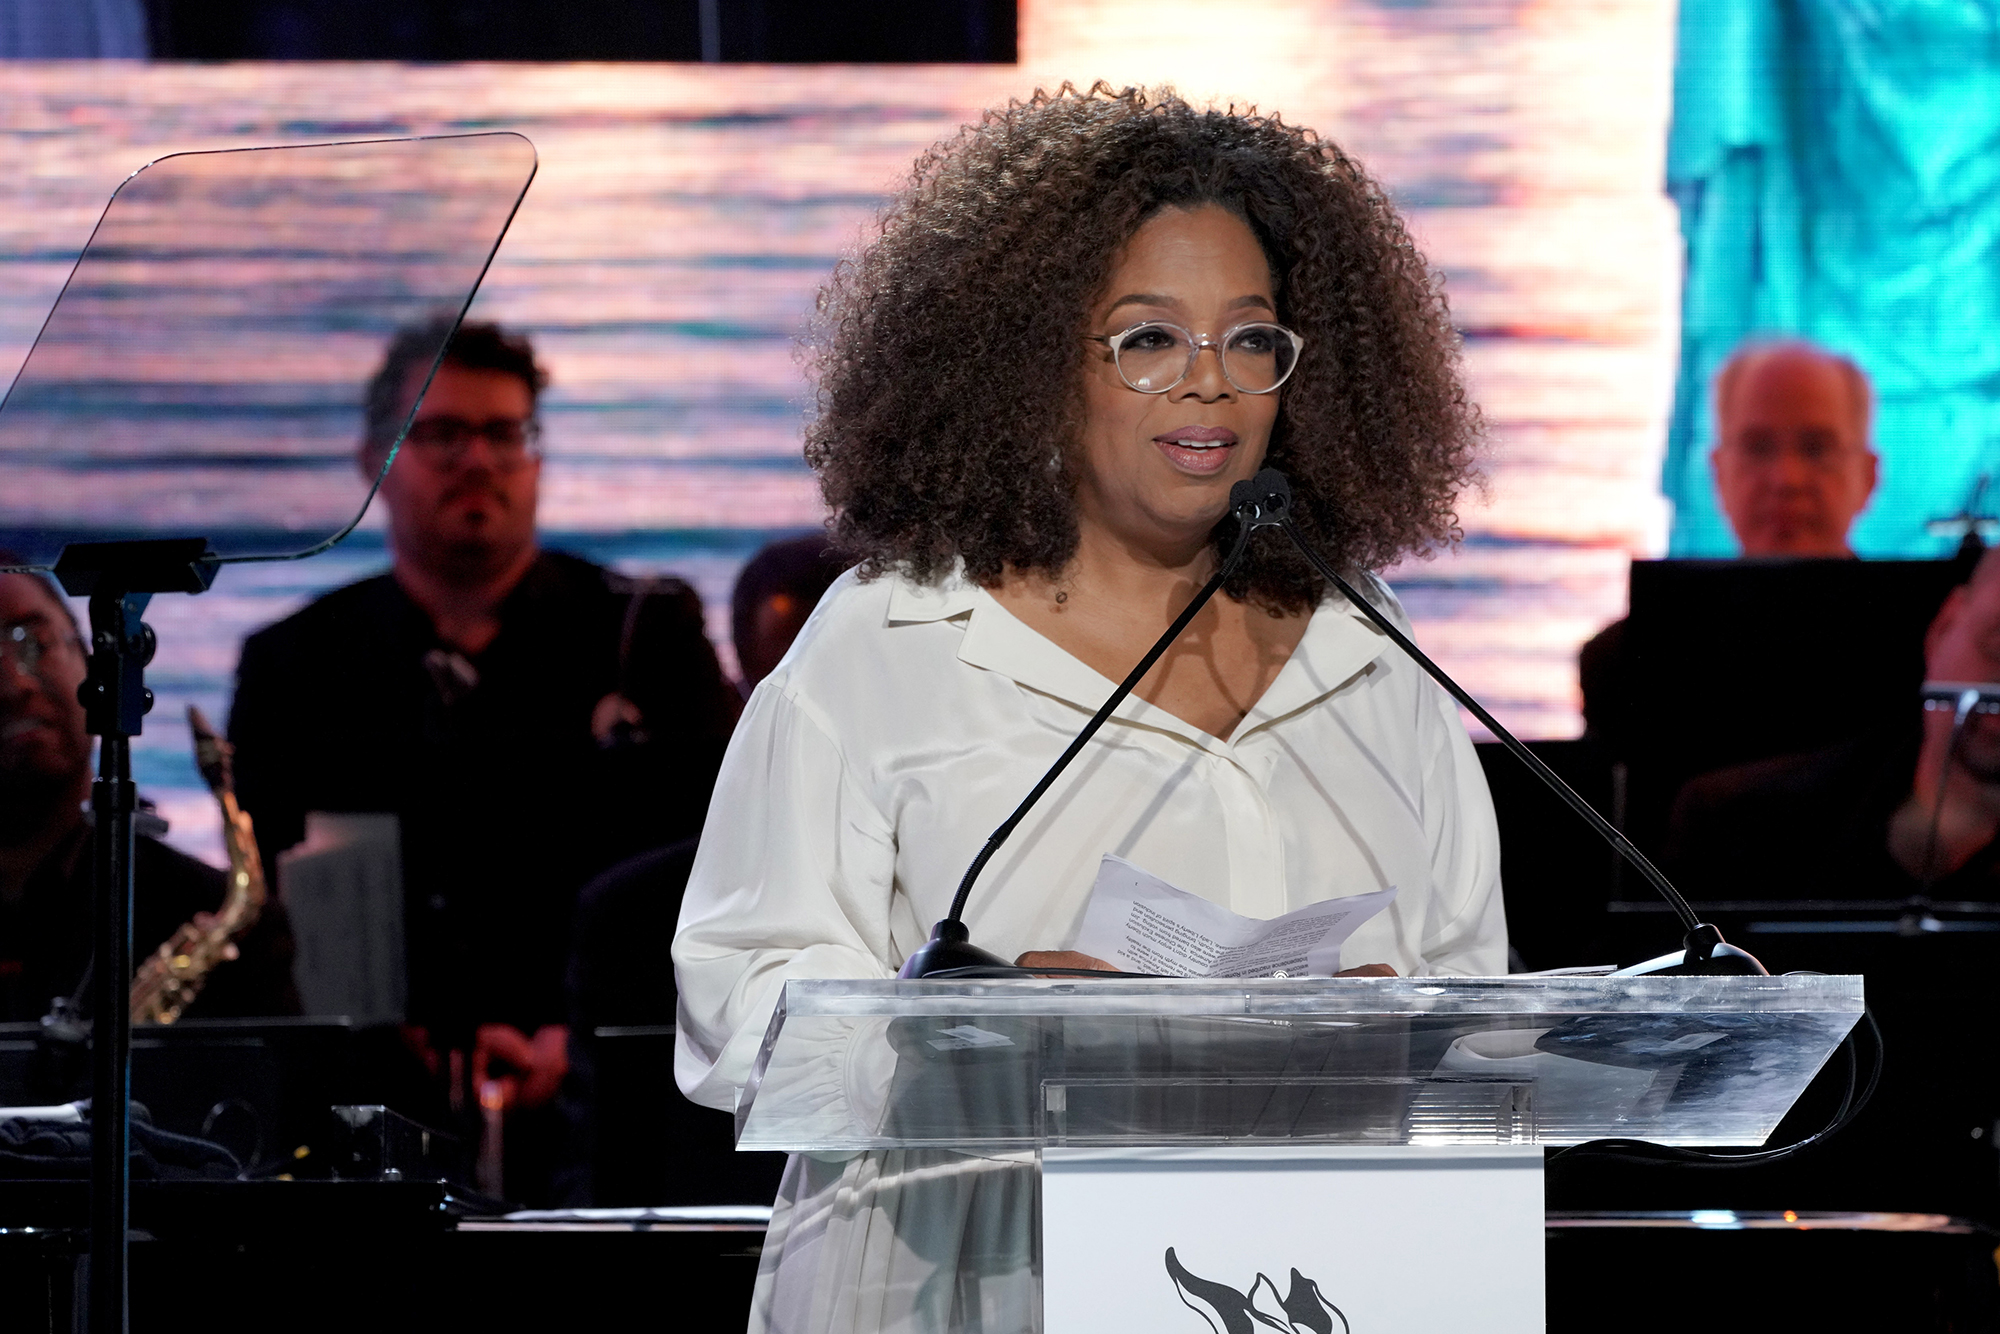 Oprah Winfrey Bought Present Prince Harry Duchess Meghan Royal Baby - Oprah Winfrey speaks onstage at the Statue Of Liberty Museum Opening Celebration on May 15, 2019 at Ellis Island in New York City.